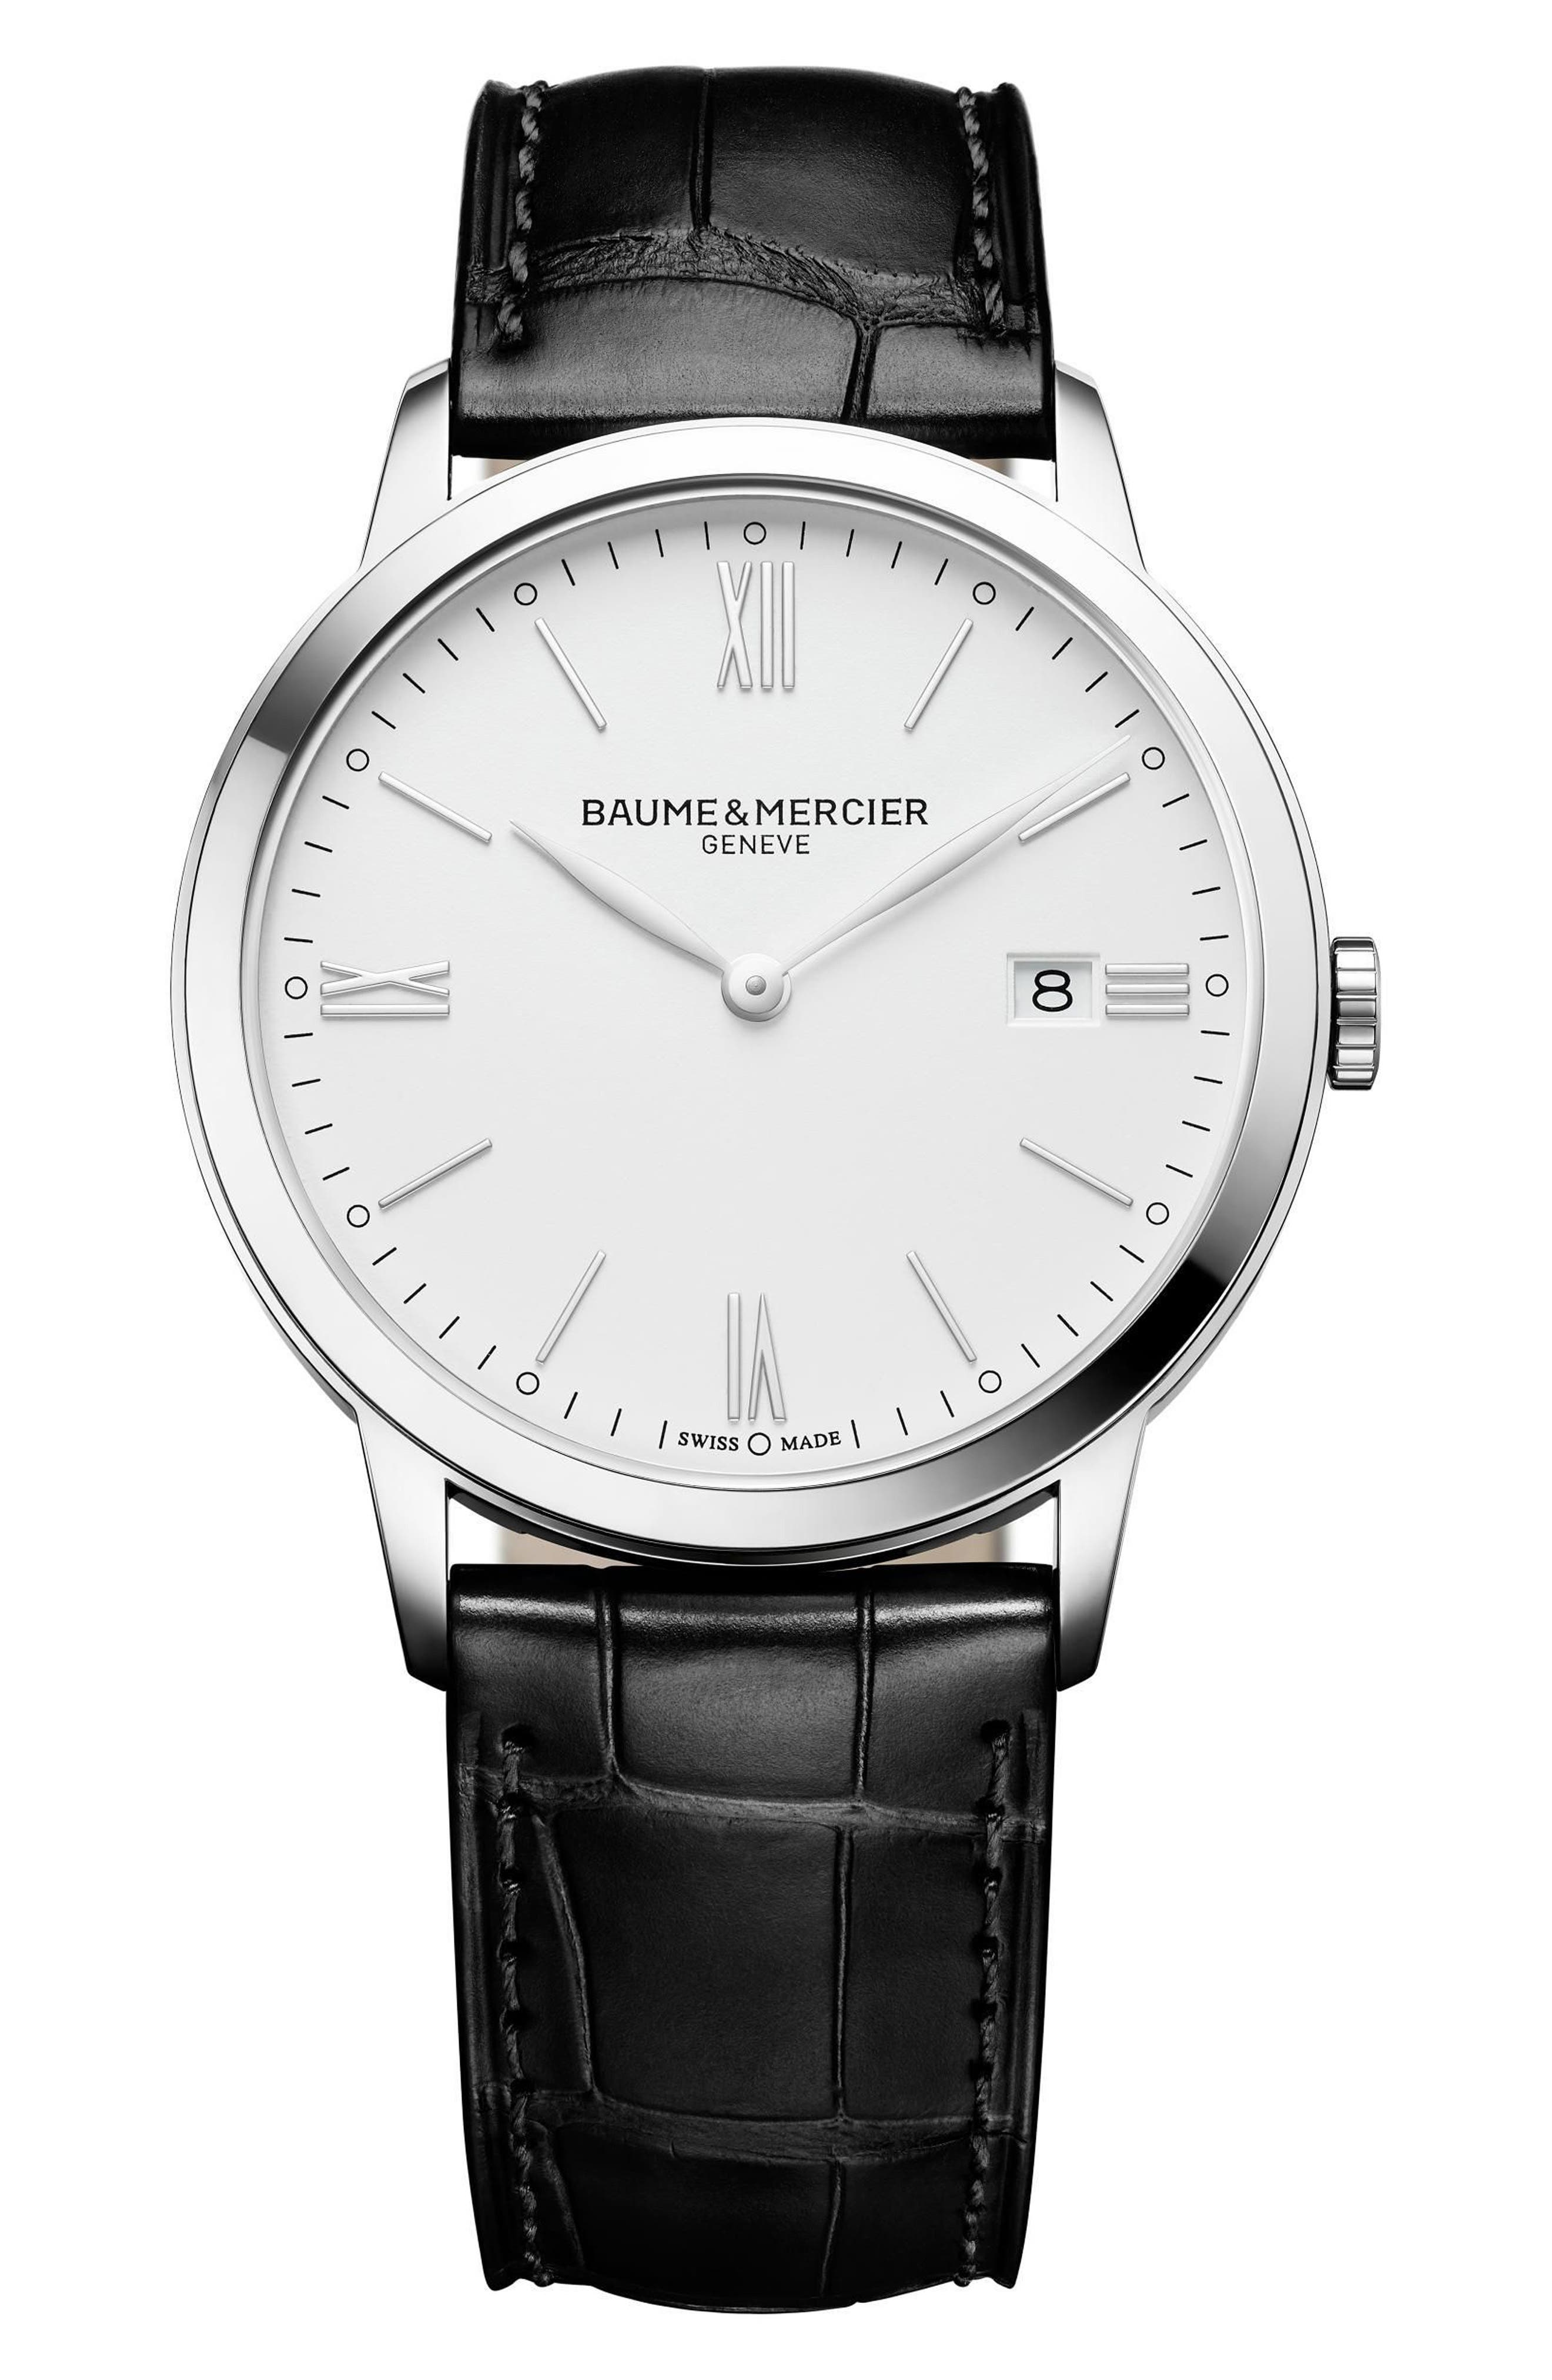 Main Image - Baume & Mercier Classima Leather Strap Watch, 40mm